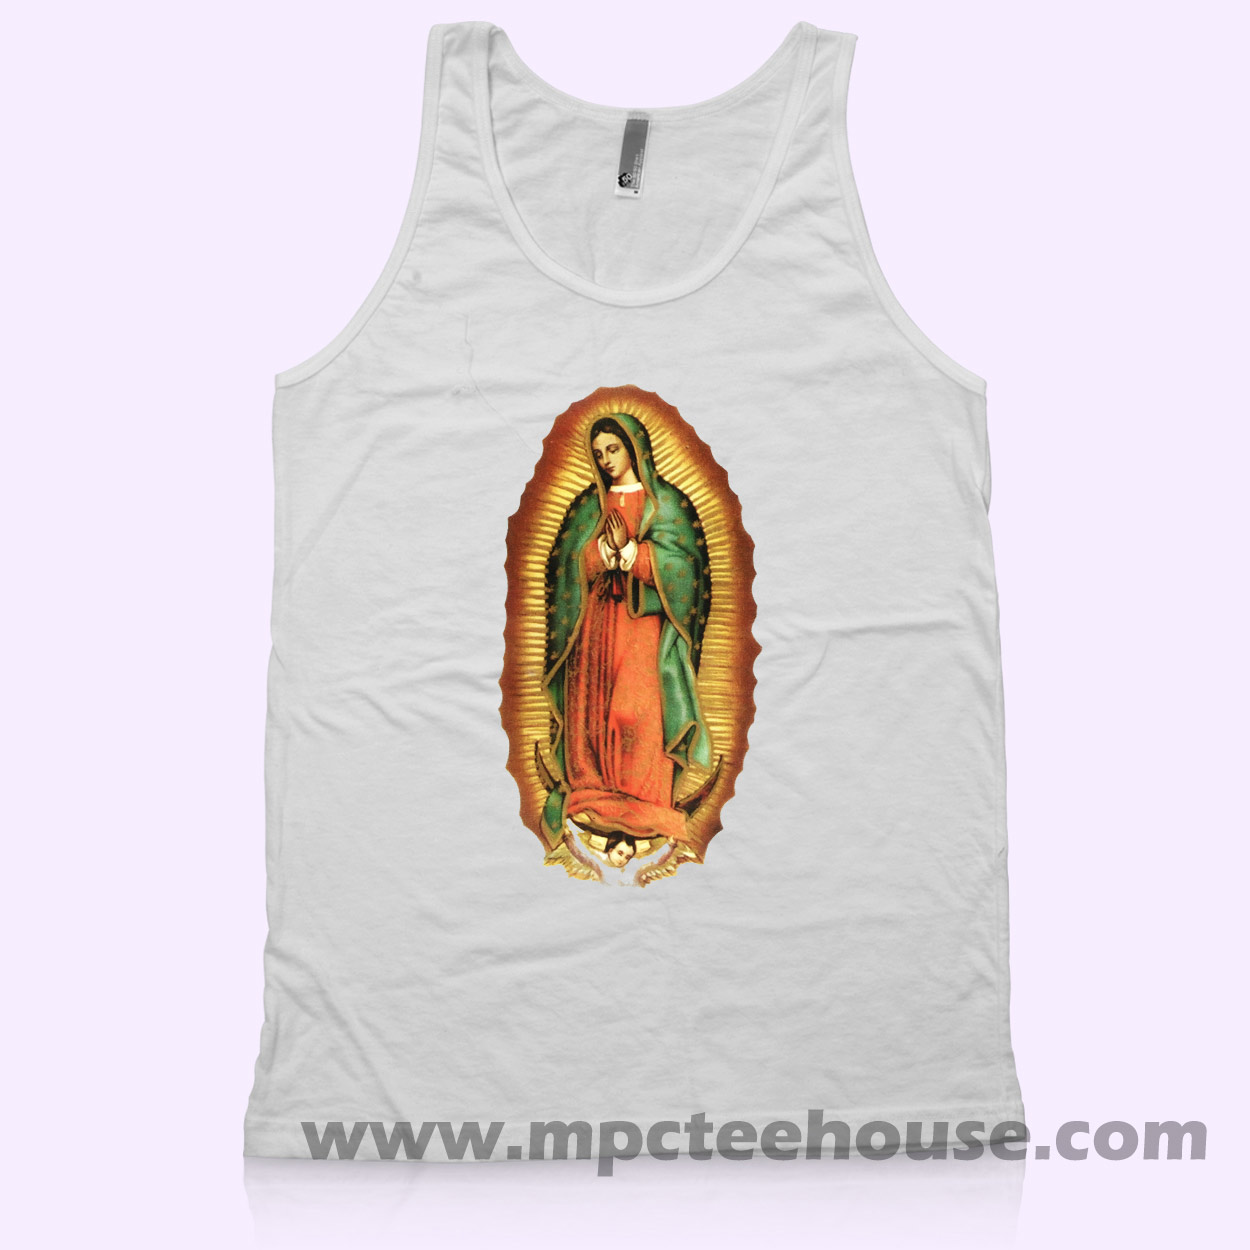 guadalupe jesus unisex tank top  u2013 mpcteehouse  80s tees